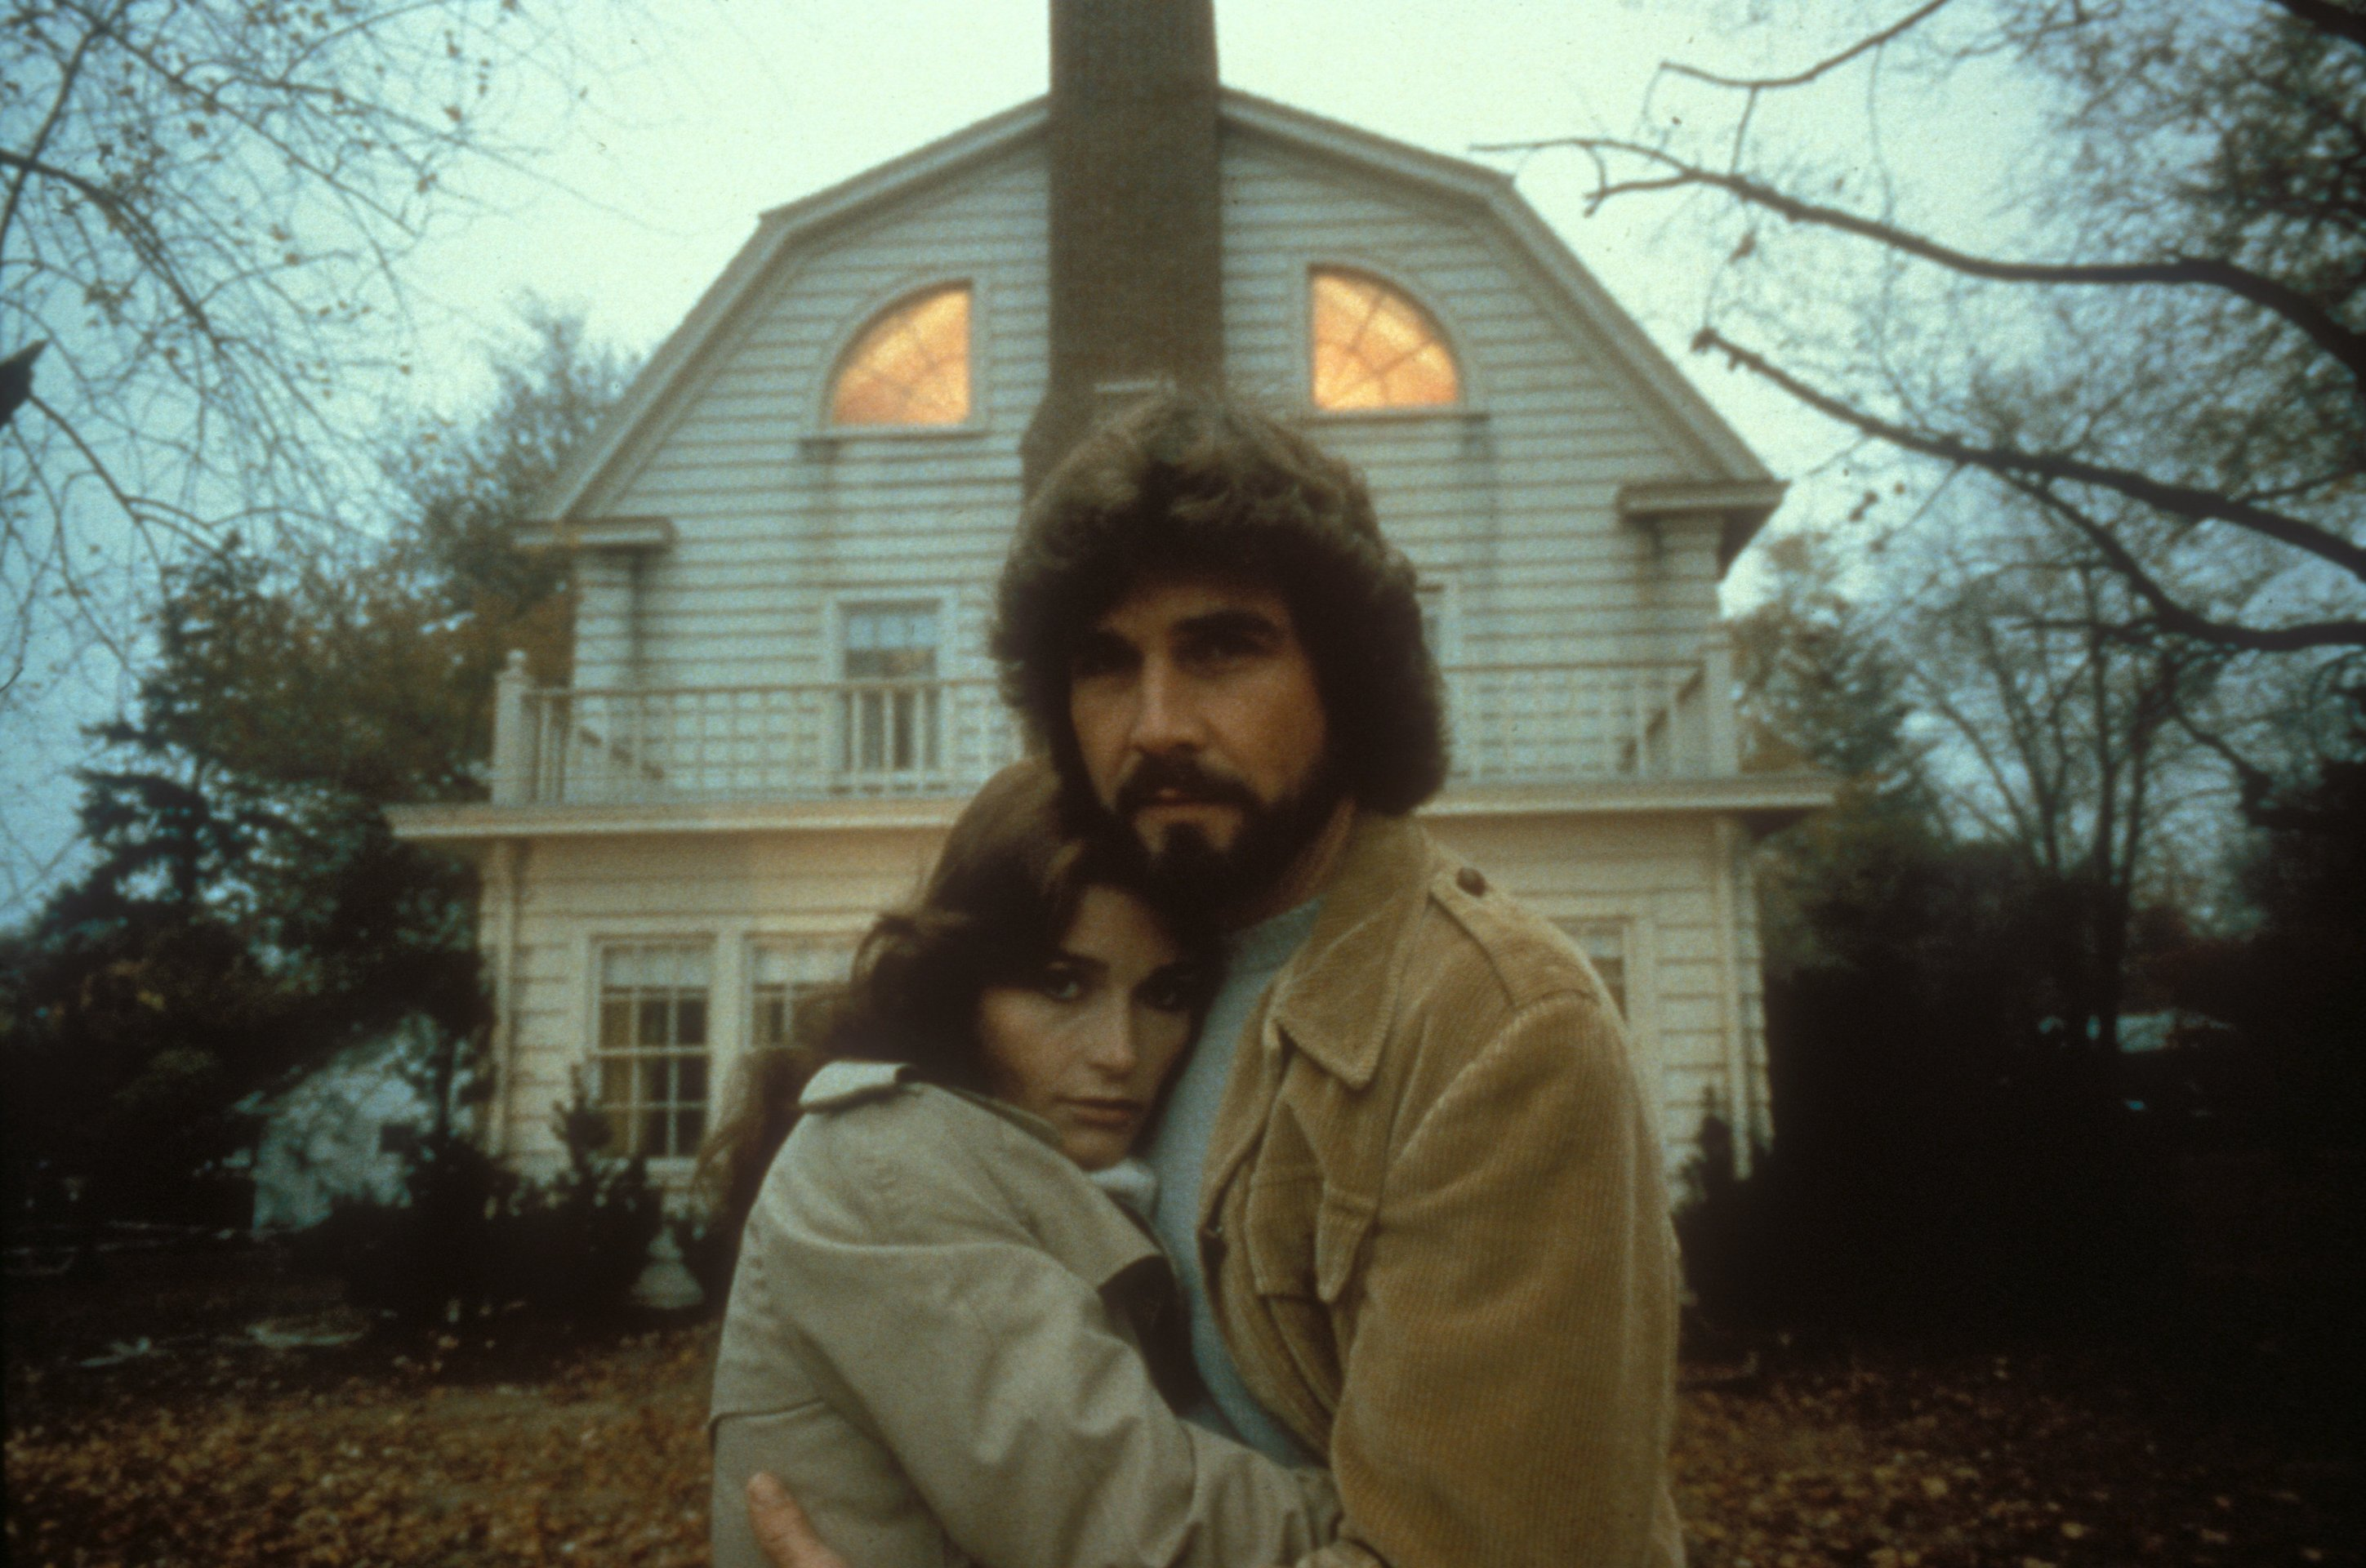 George and Kathy Lutz (James Brolin and Margot Kidder) stand in front of the Amityville house